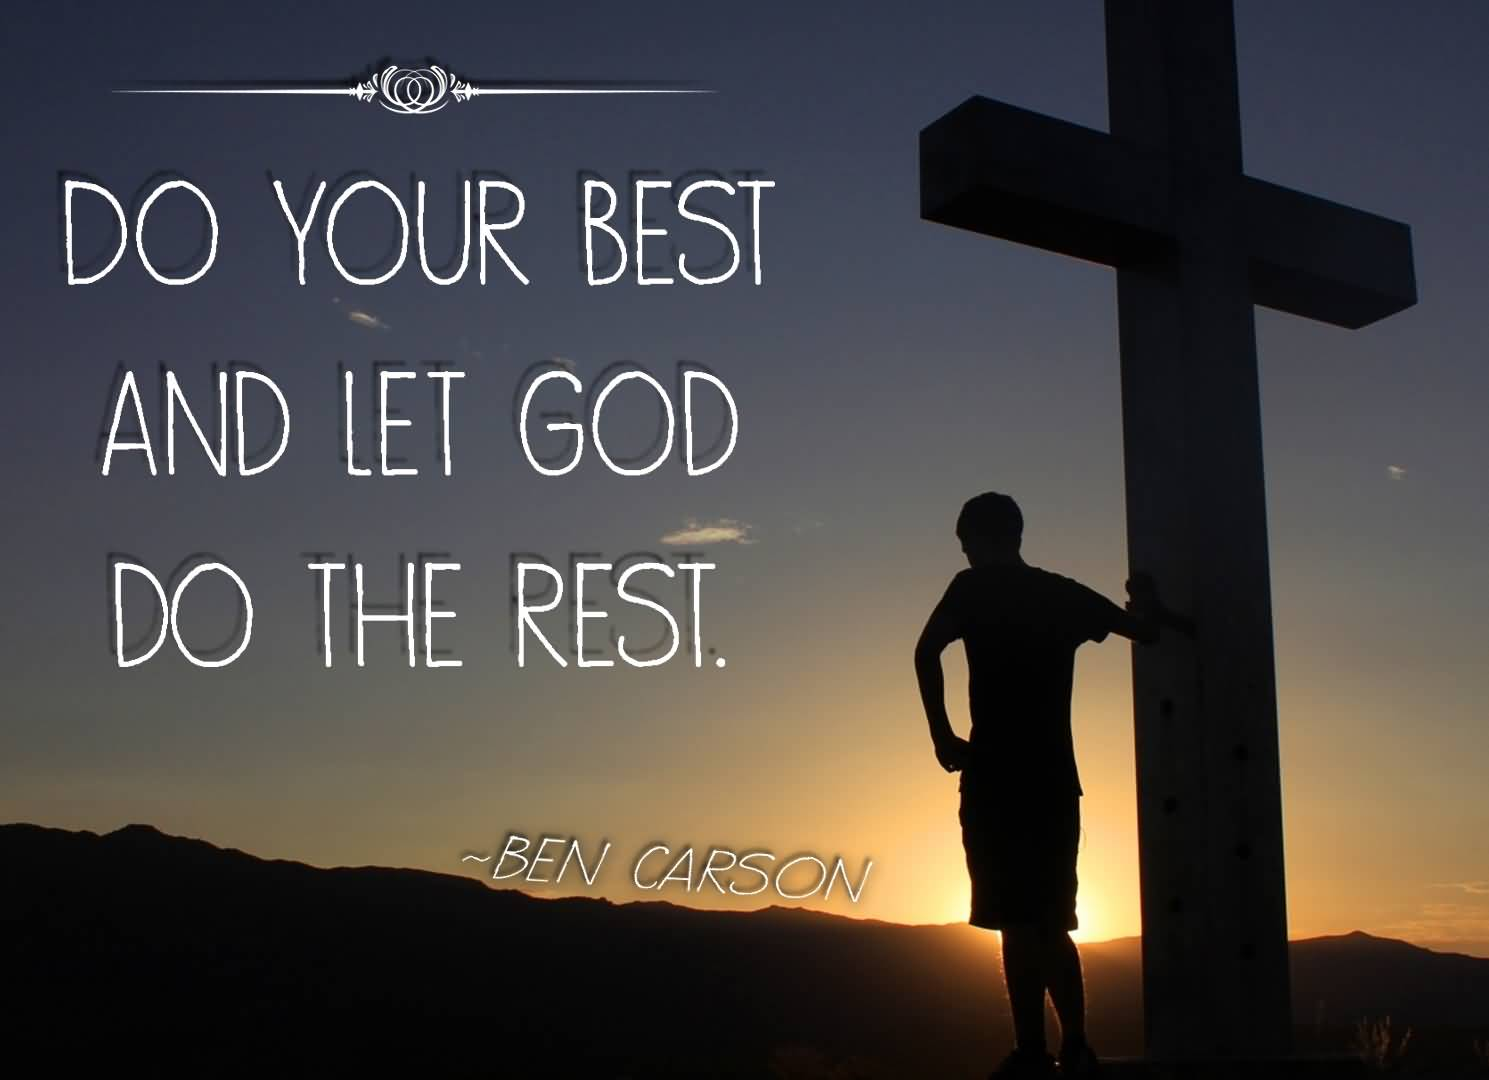 Do your best and let god do the rest - Ben Carson